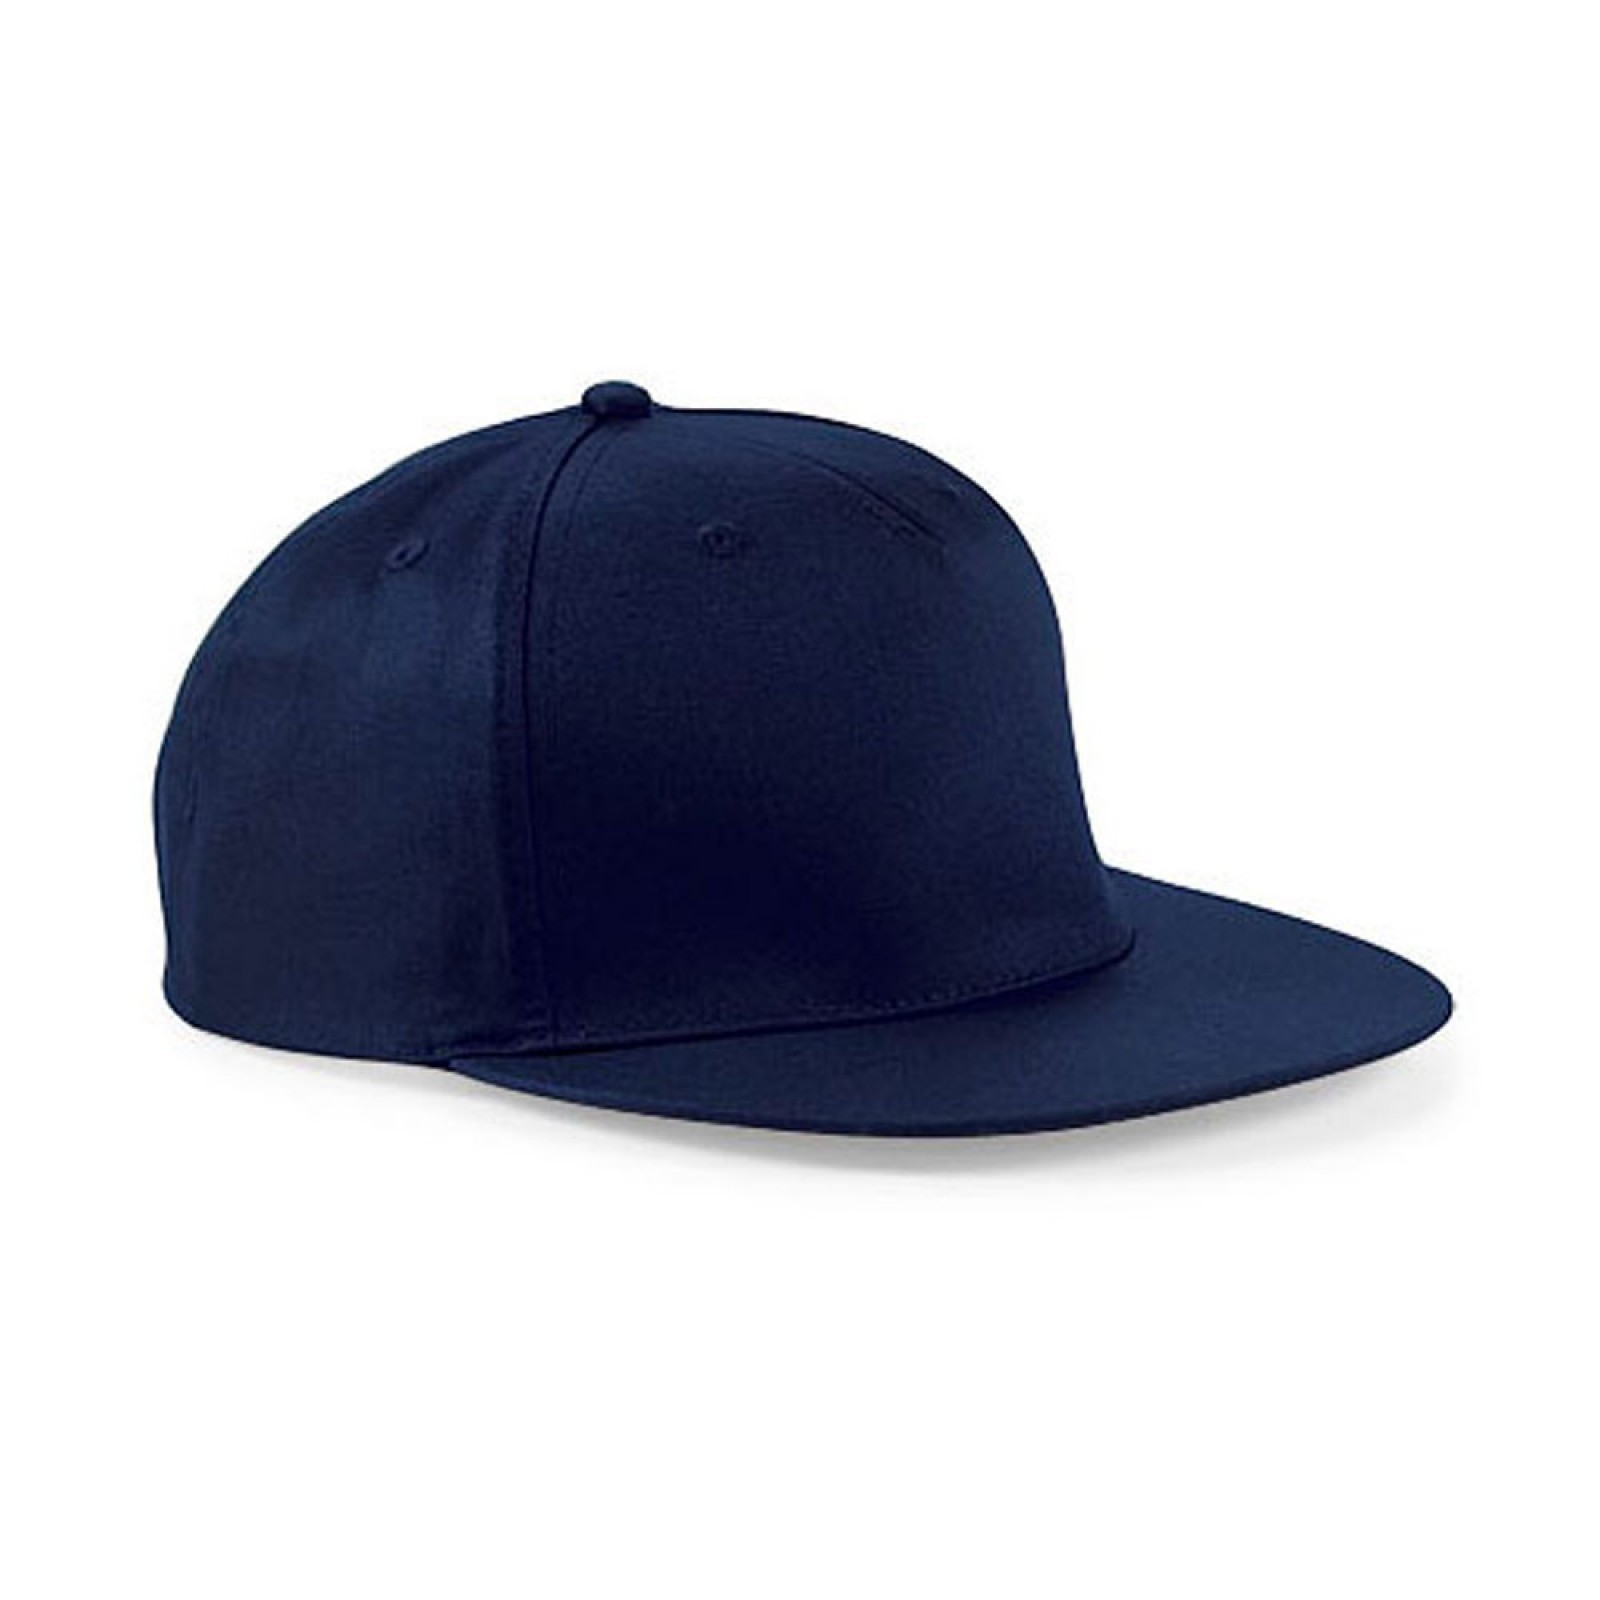 Crawley CC Navy Snapback Hat